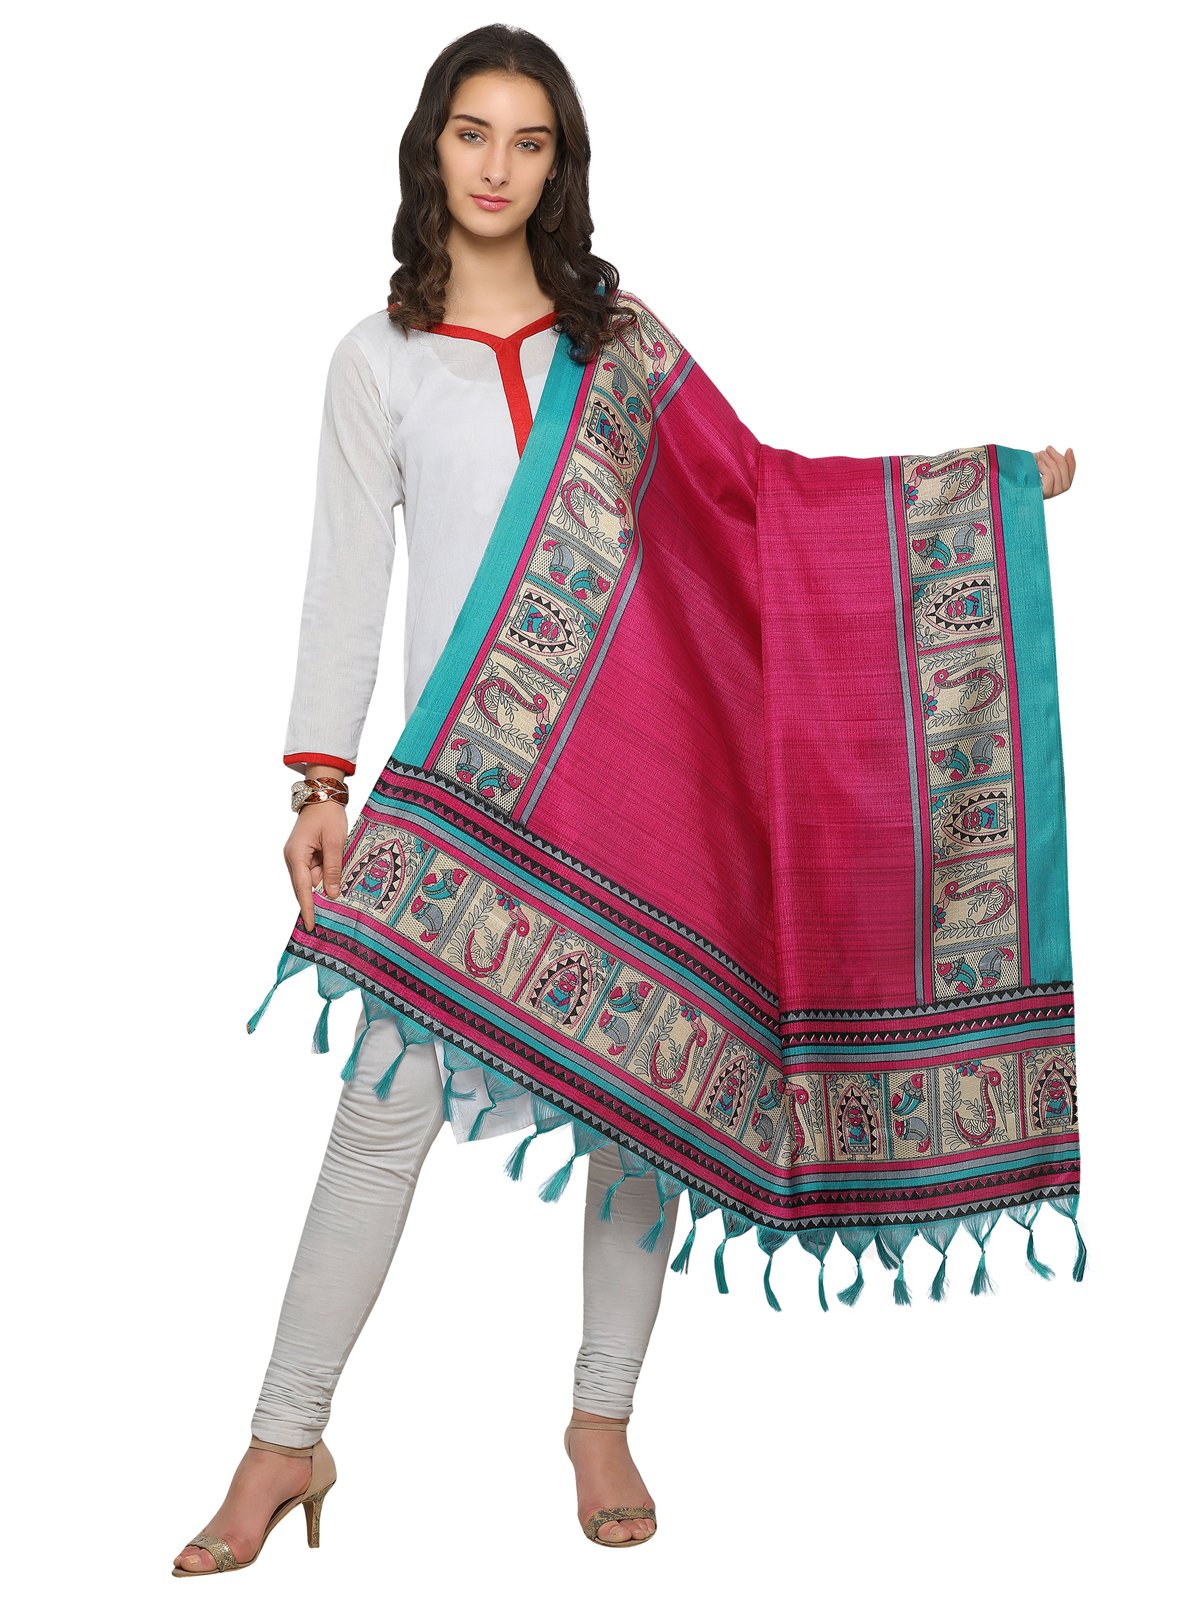 Kanchnar Red and Turquoise Colored BhagalpuriDupatta